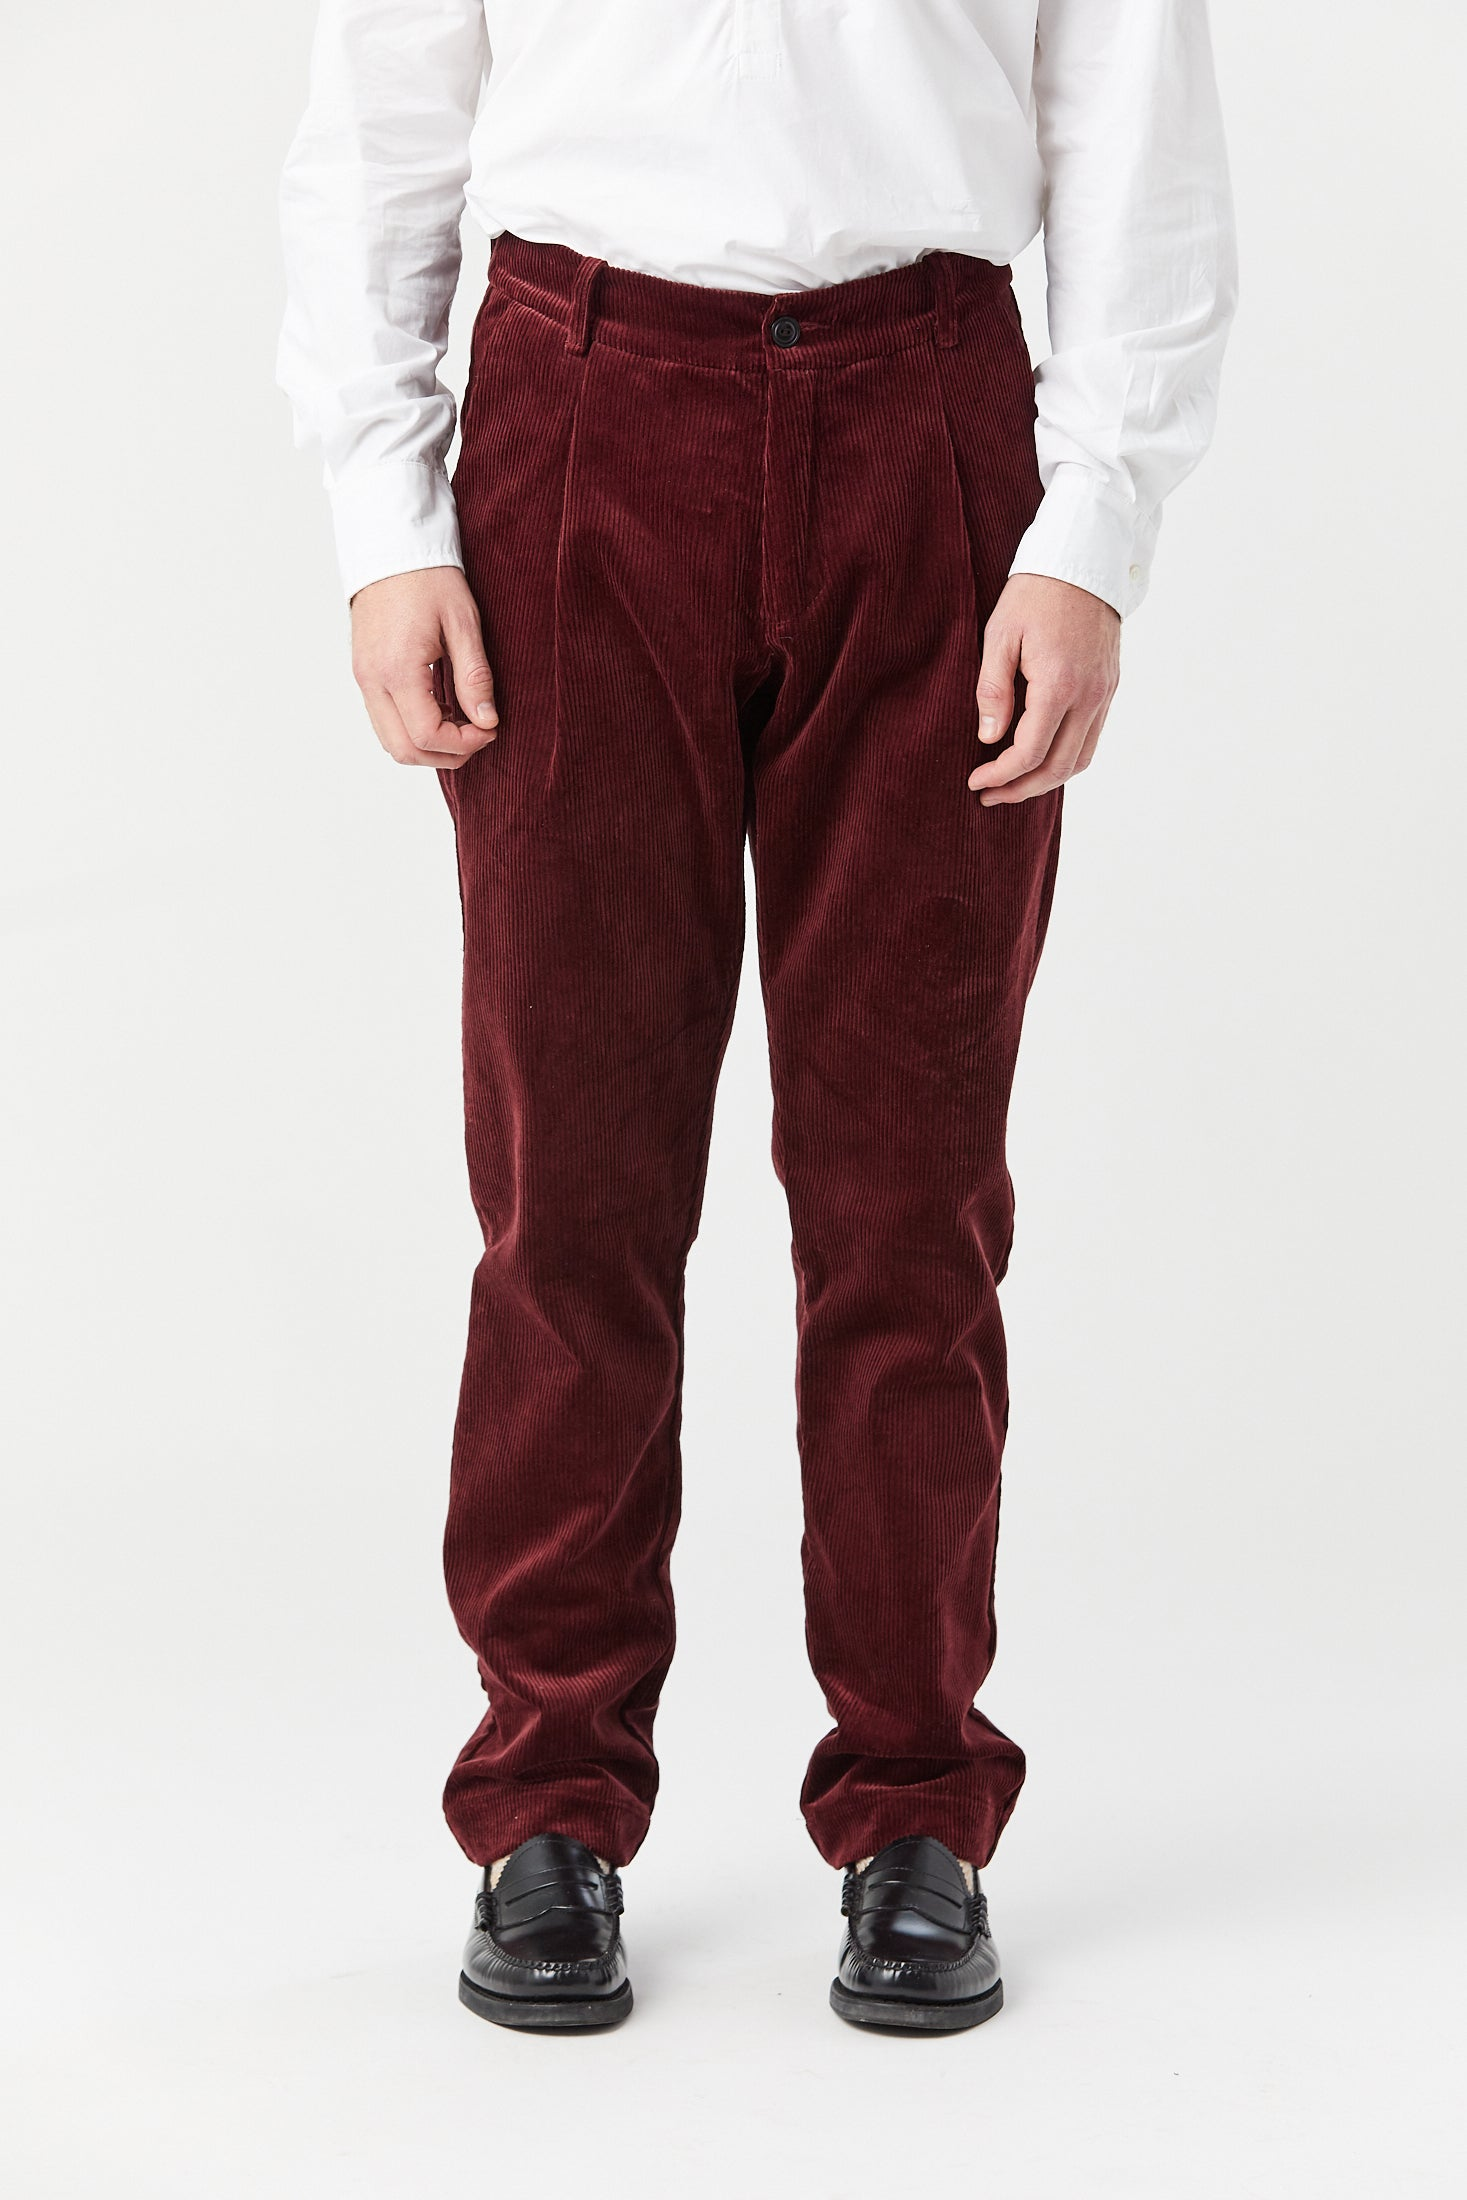 CORKTOWN PLEAT TROUSER IN MAROON CORD - Fortune Goods